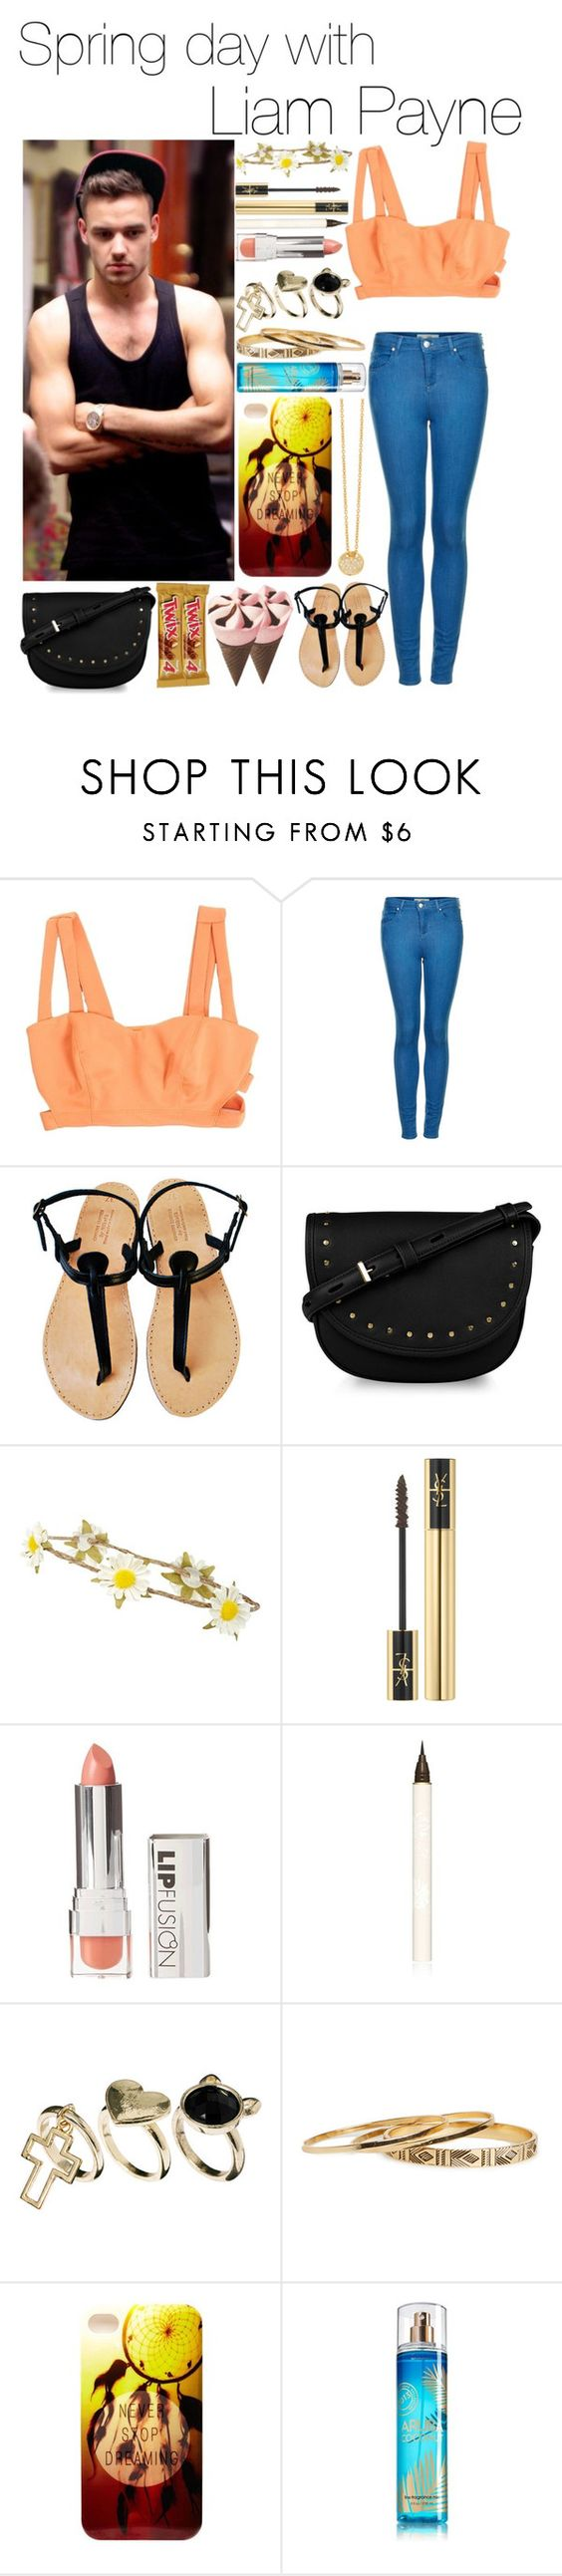 """Spring day with Liam Payne"" by kidrauhl-12 ❤ liked on Polyvore featuring Payne, Topshop, CHARLES & KEITH, Yves Saint Laurent, FusionBeauty, Paul & Joe, Rock 'N Rose, DailyLook, Charlotte Russe and 7 For All Mankind"